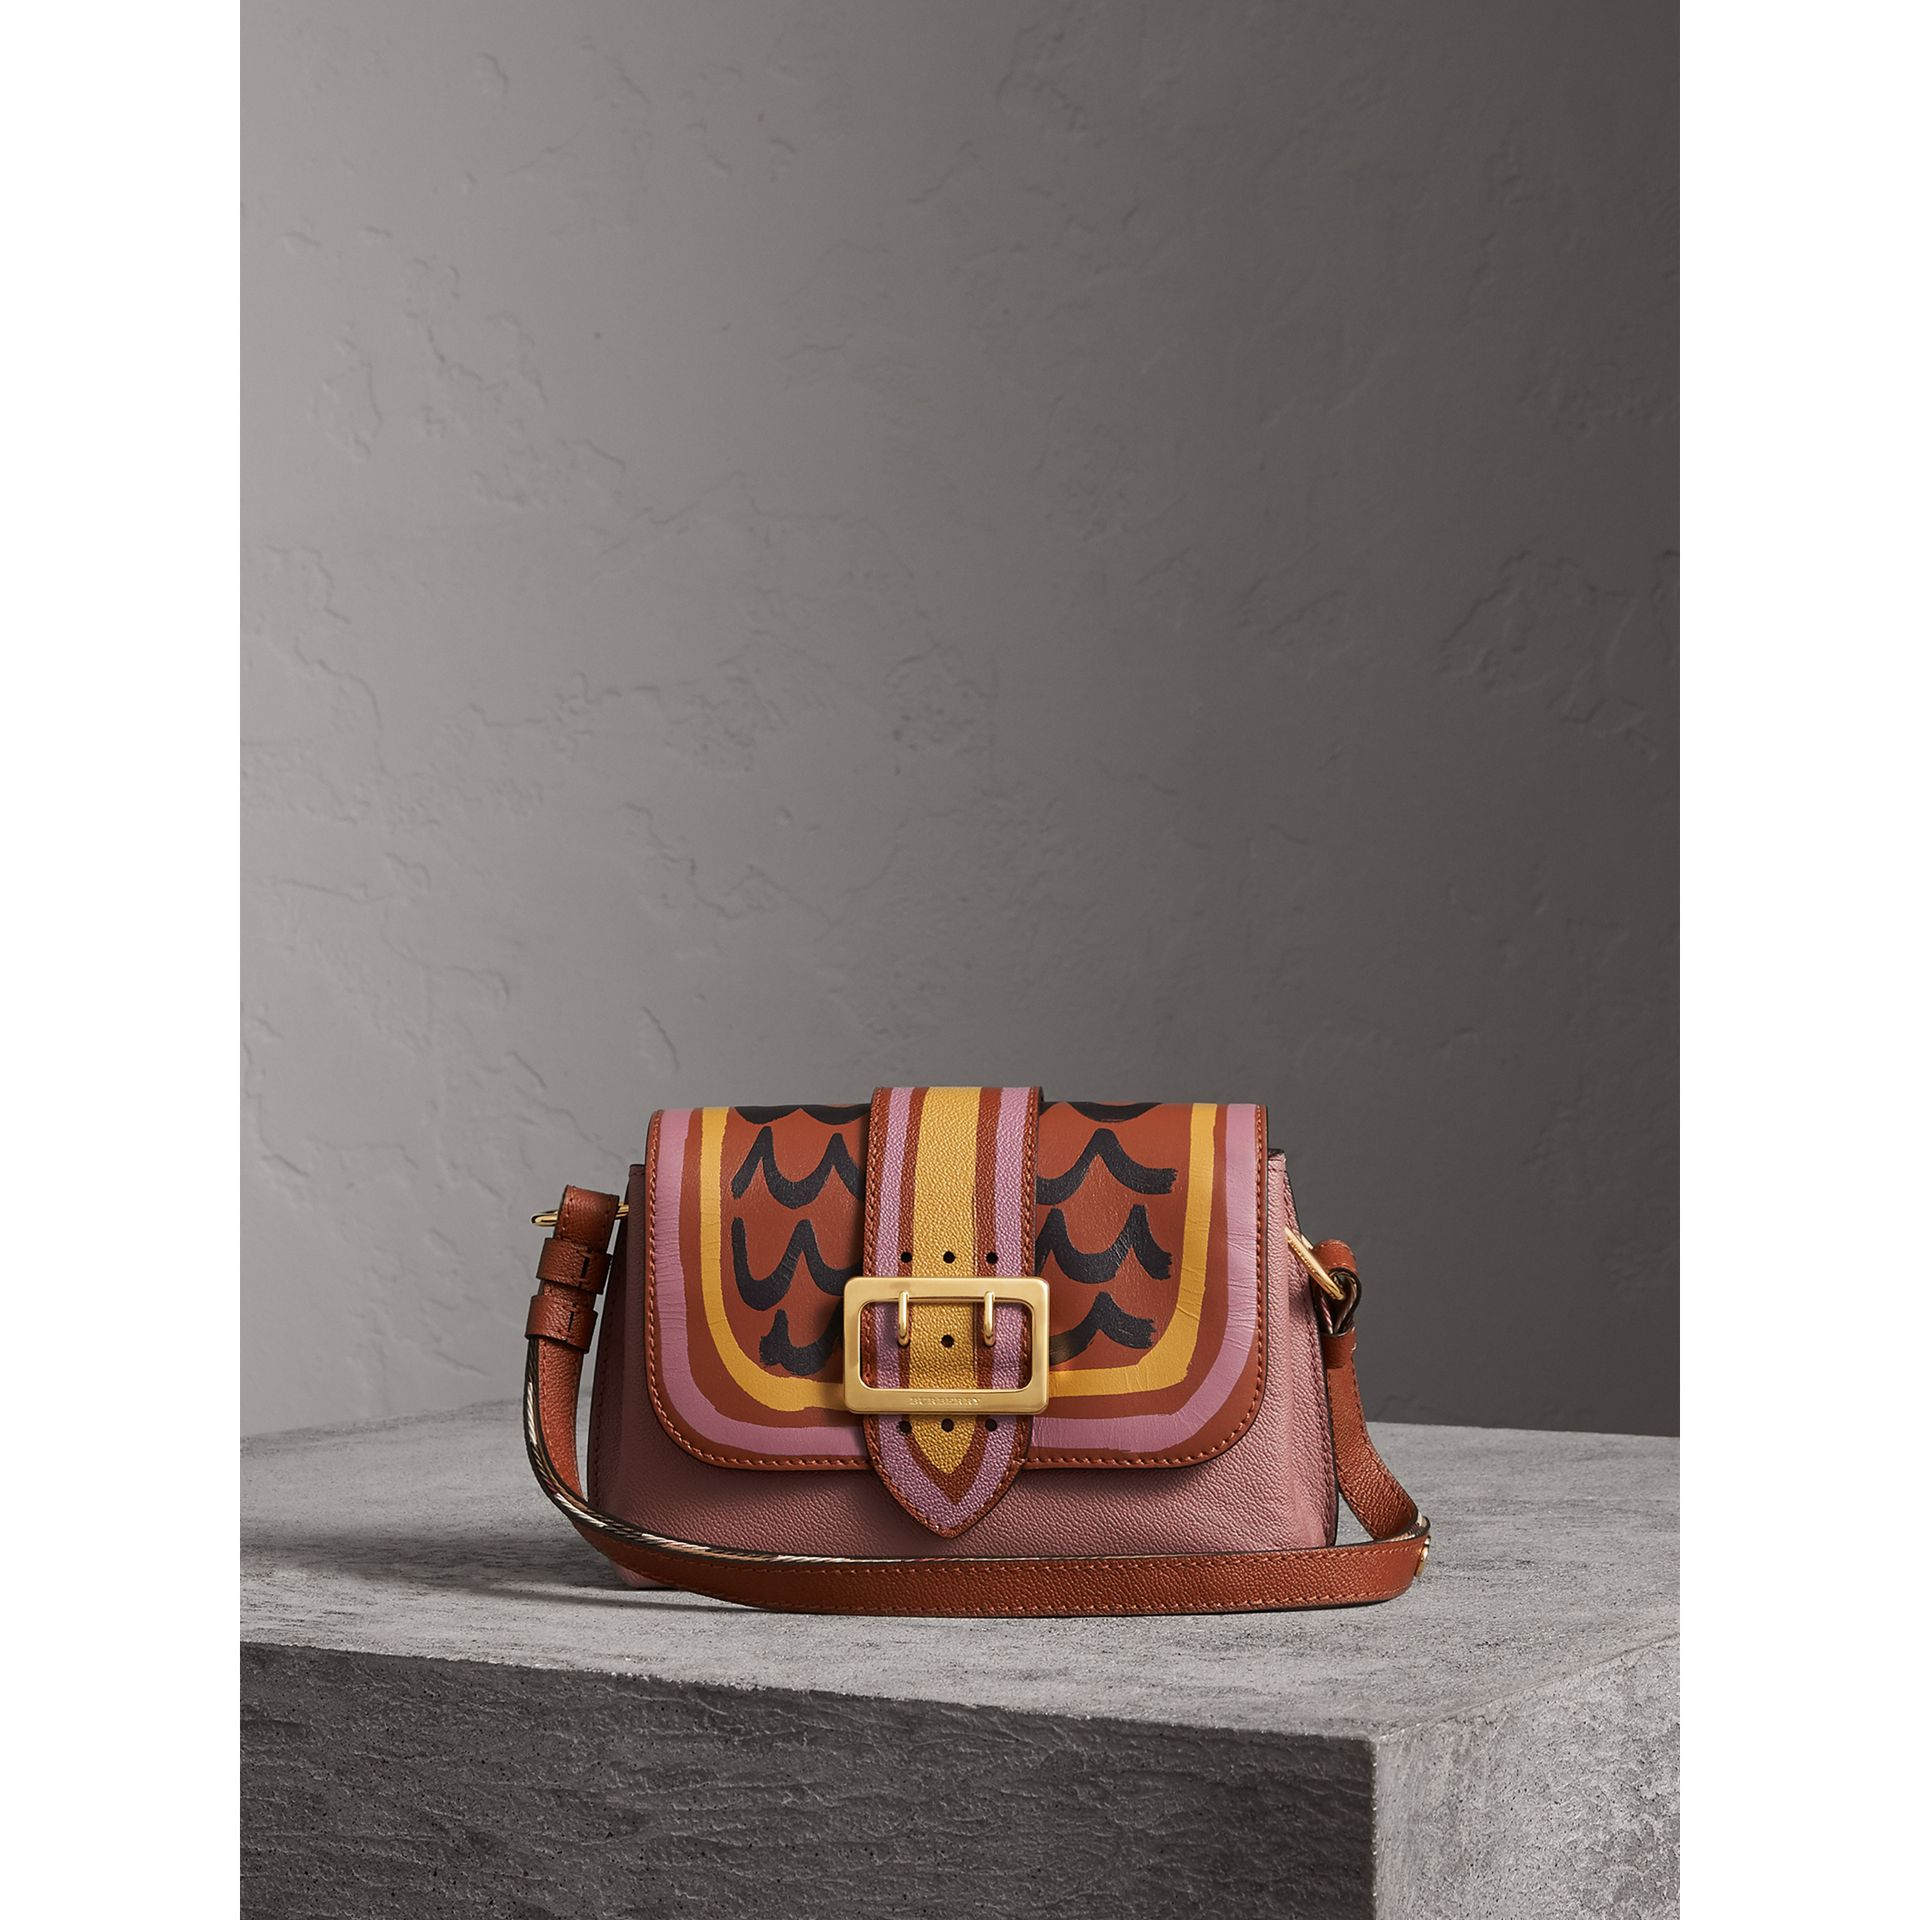 The Buckle Crossbody Bag in Trompe L'oeil Leather in Dusty Pink/bright Toffee - Women | Burberry Singapore - gallery image 1